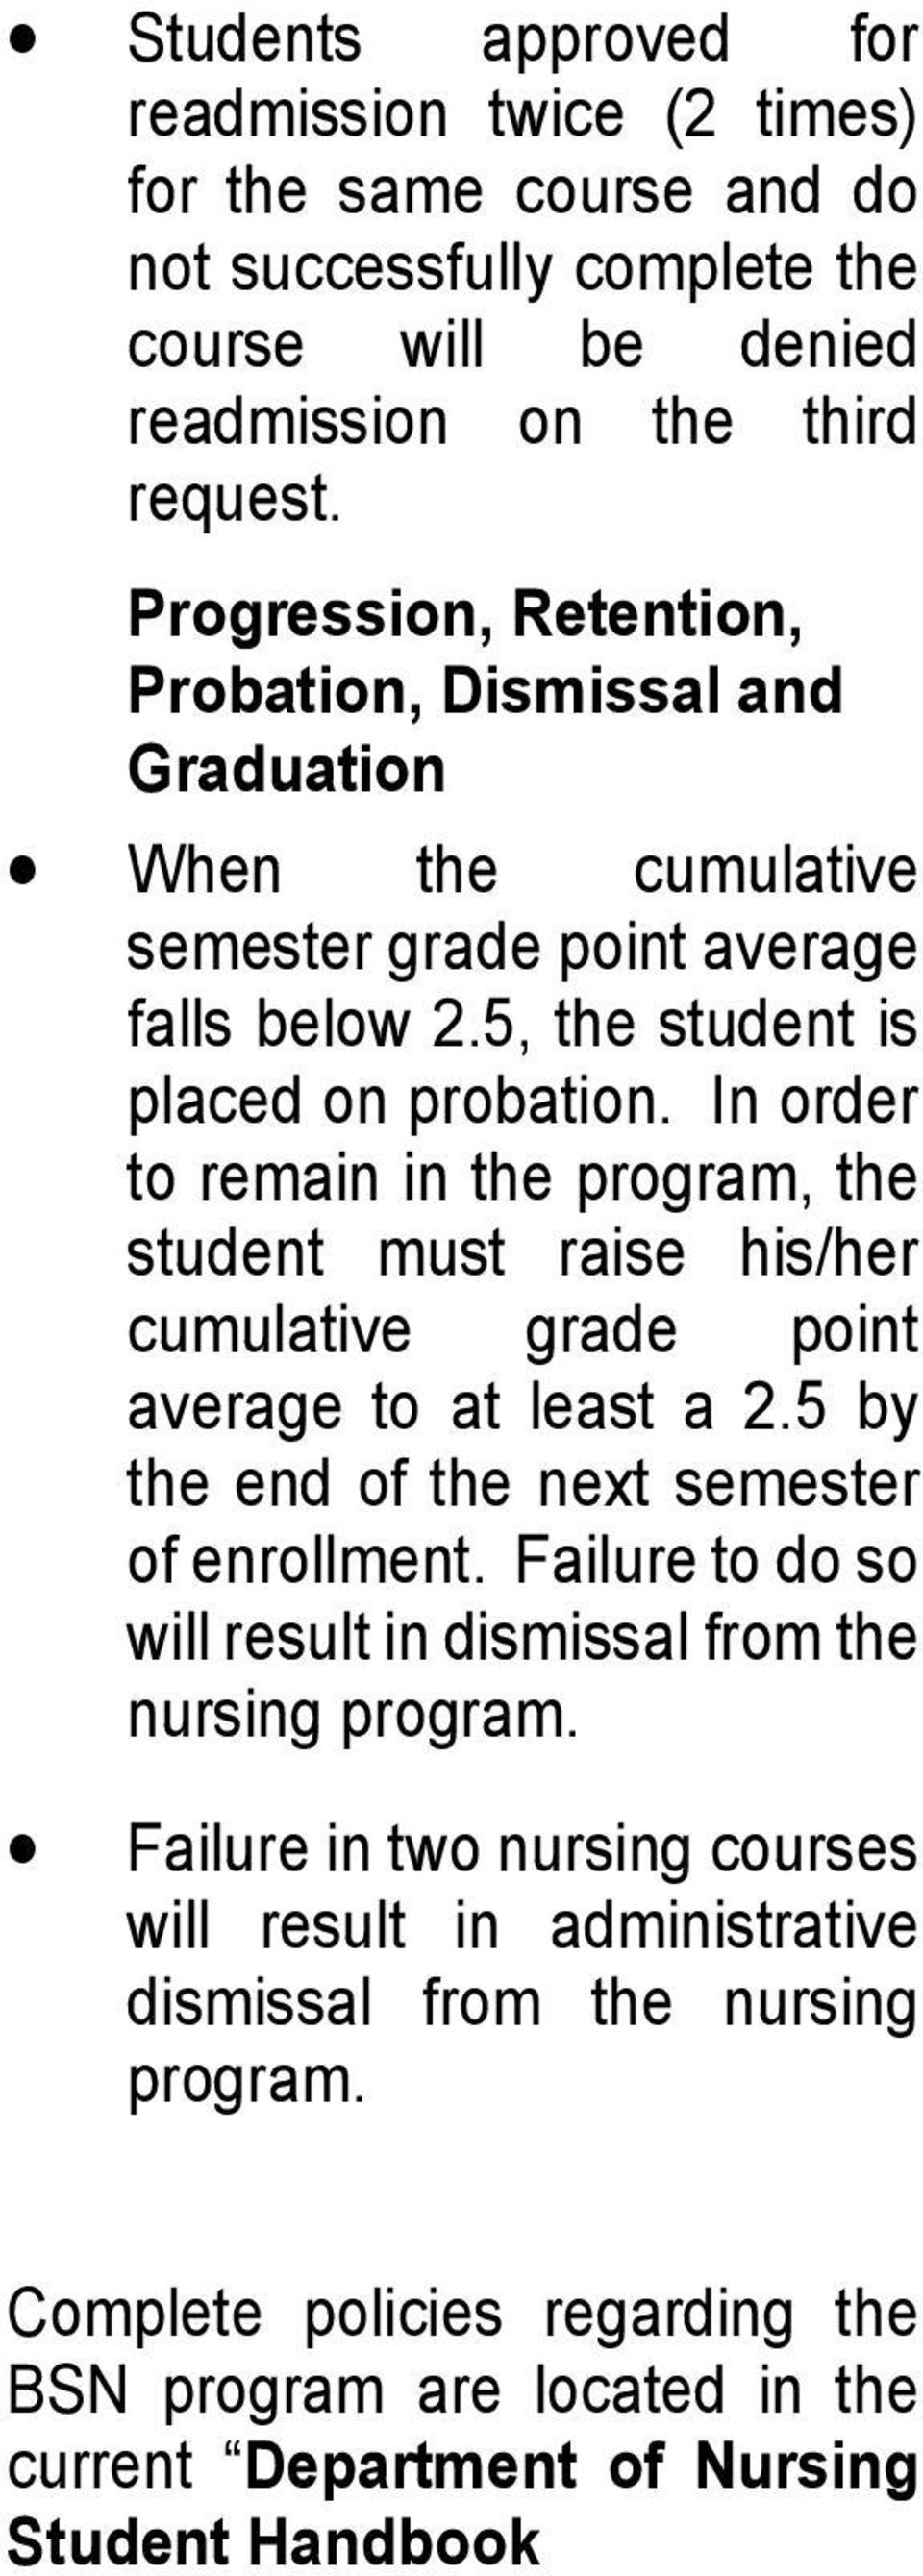 In order to remain in the program, the student must raise his/her cumulative grade point average to at least a 2.5 by the end of the next semester of enrollment.